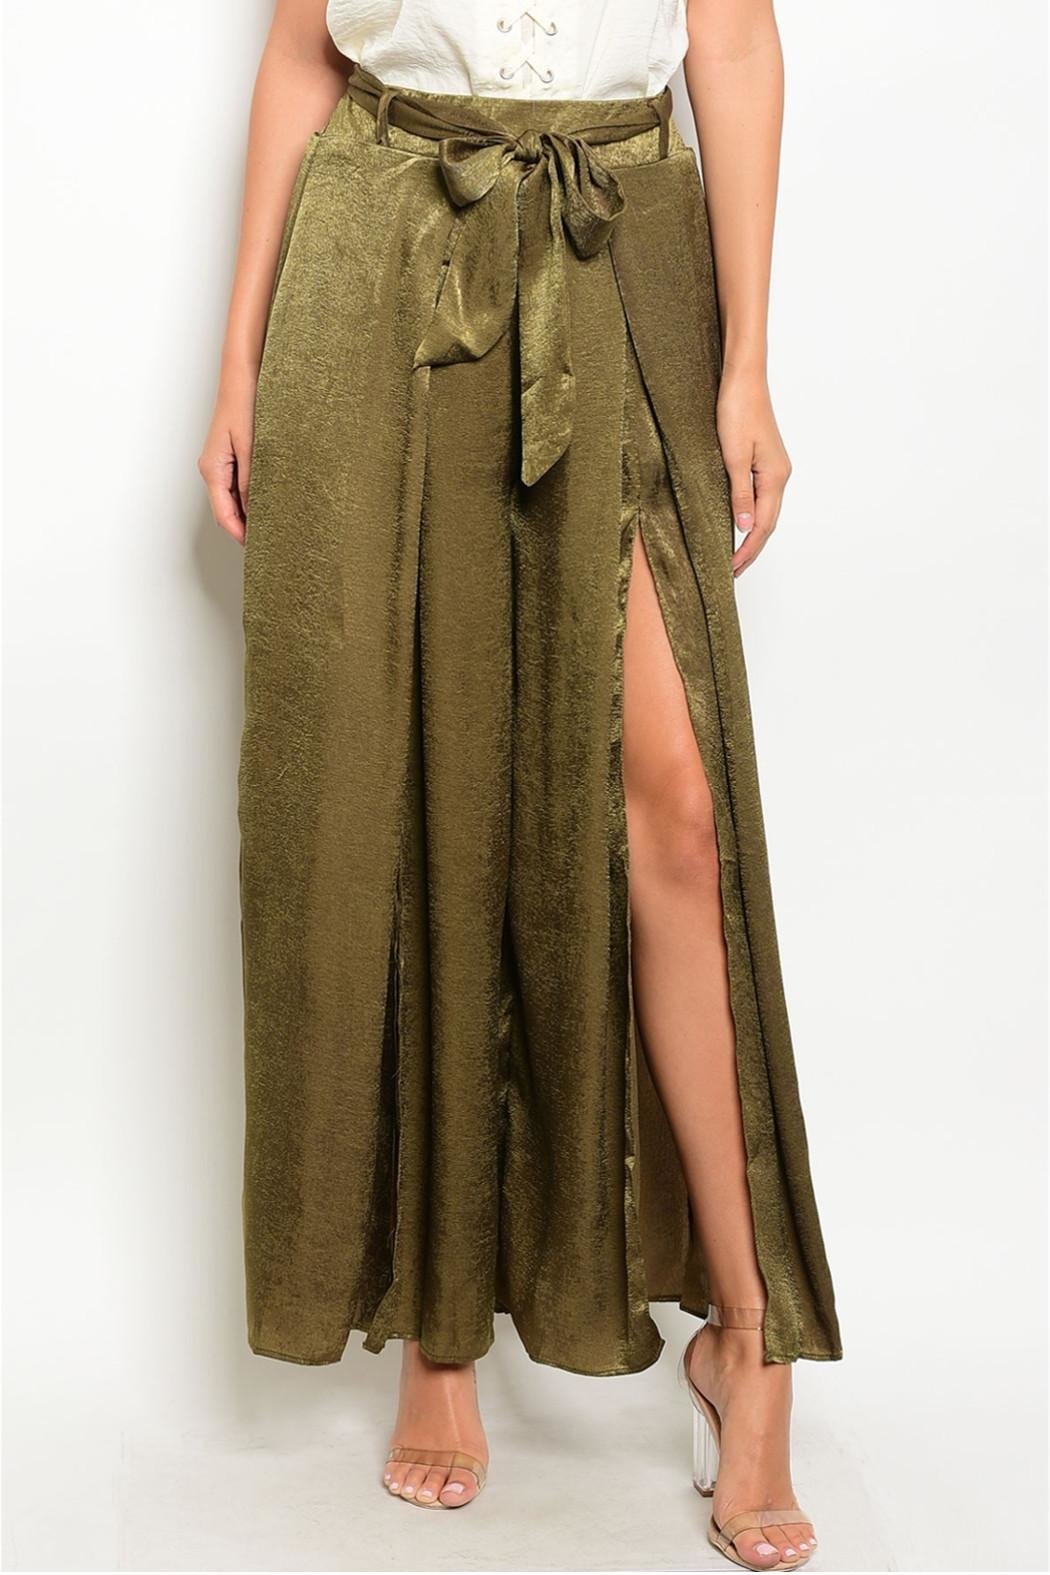 in the Beginning Olive Satin Palazzo Pants - Front Full Image